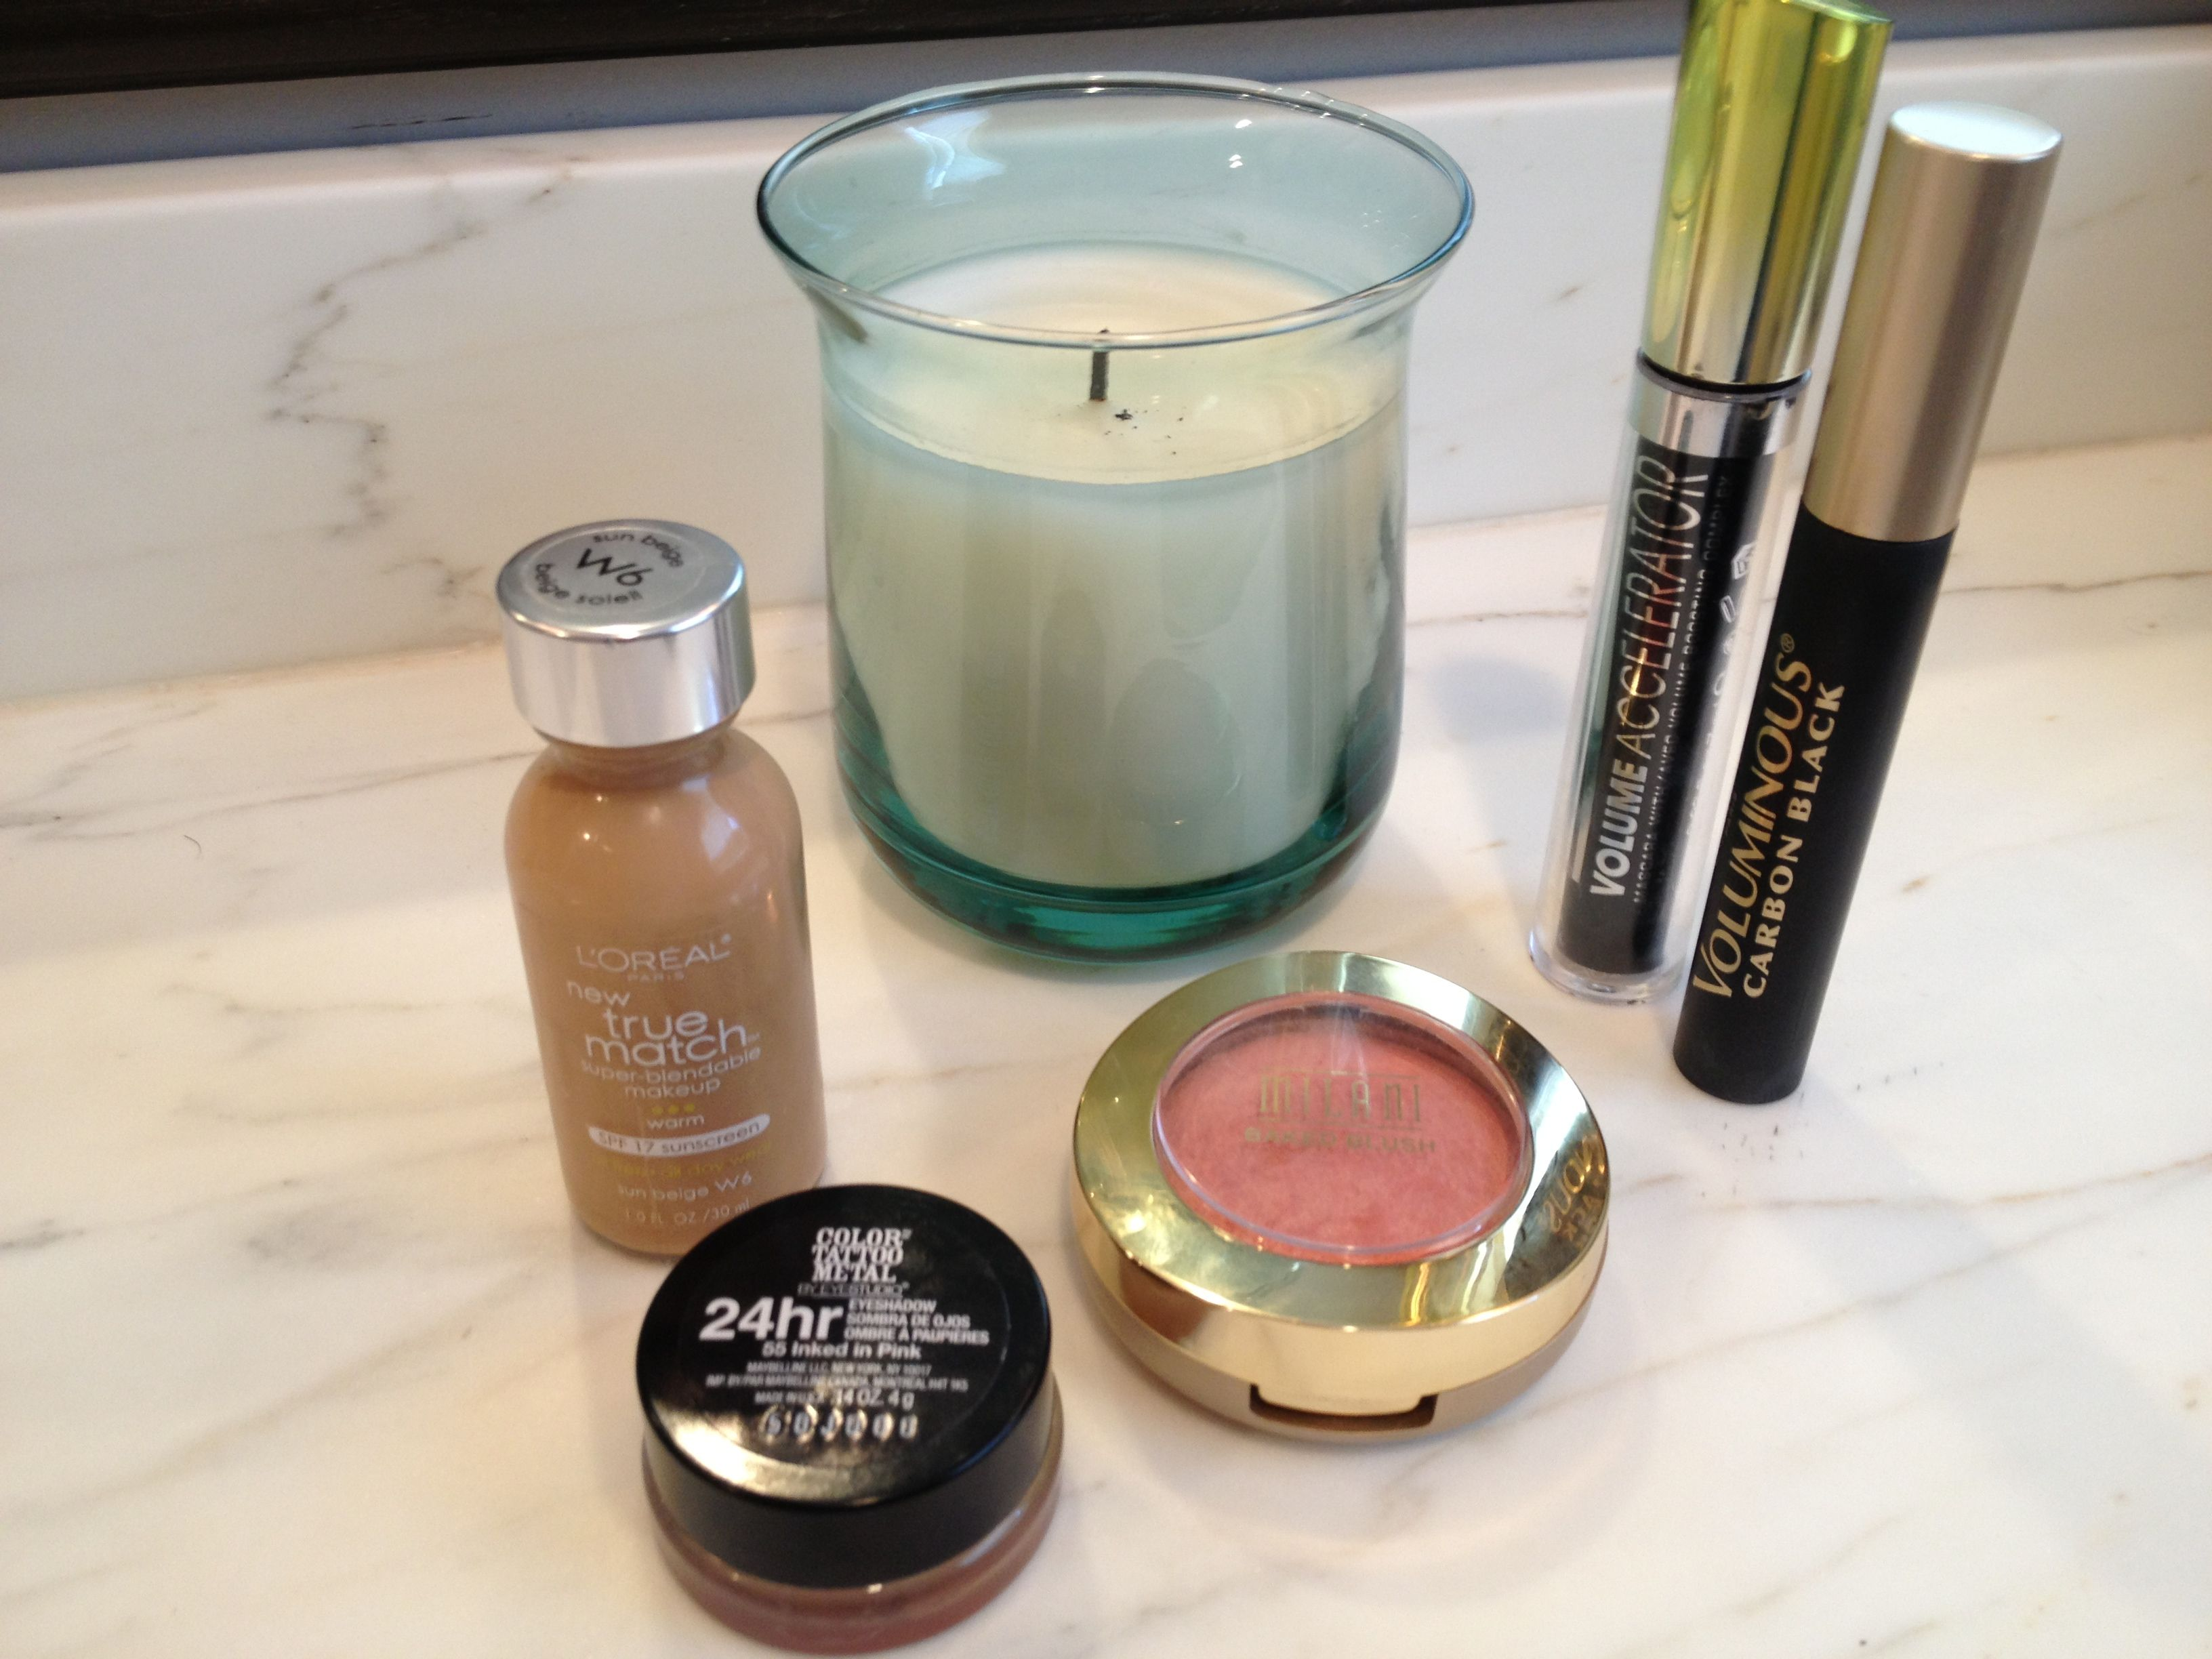 Drug Store Products I love #ddbyg #beautyproducts #makeup #drugstore #linenandgold